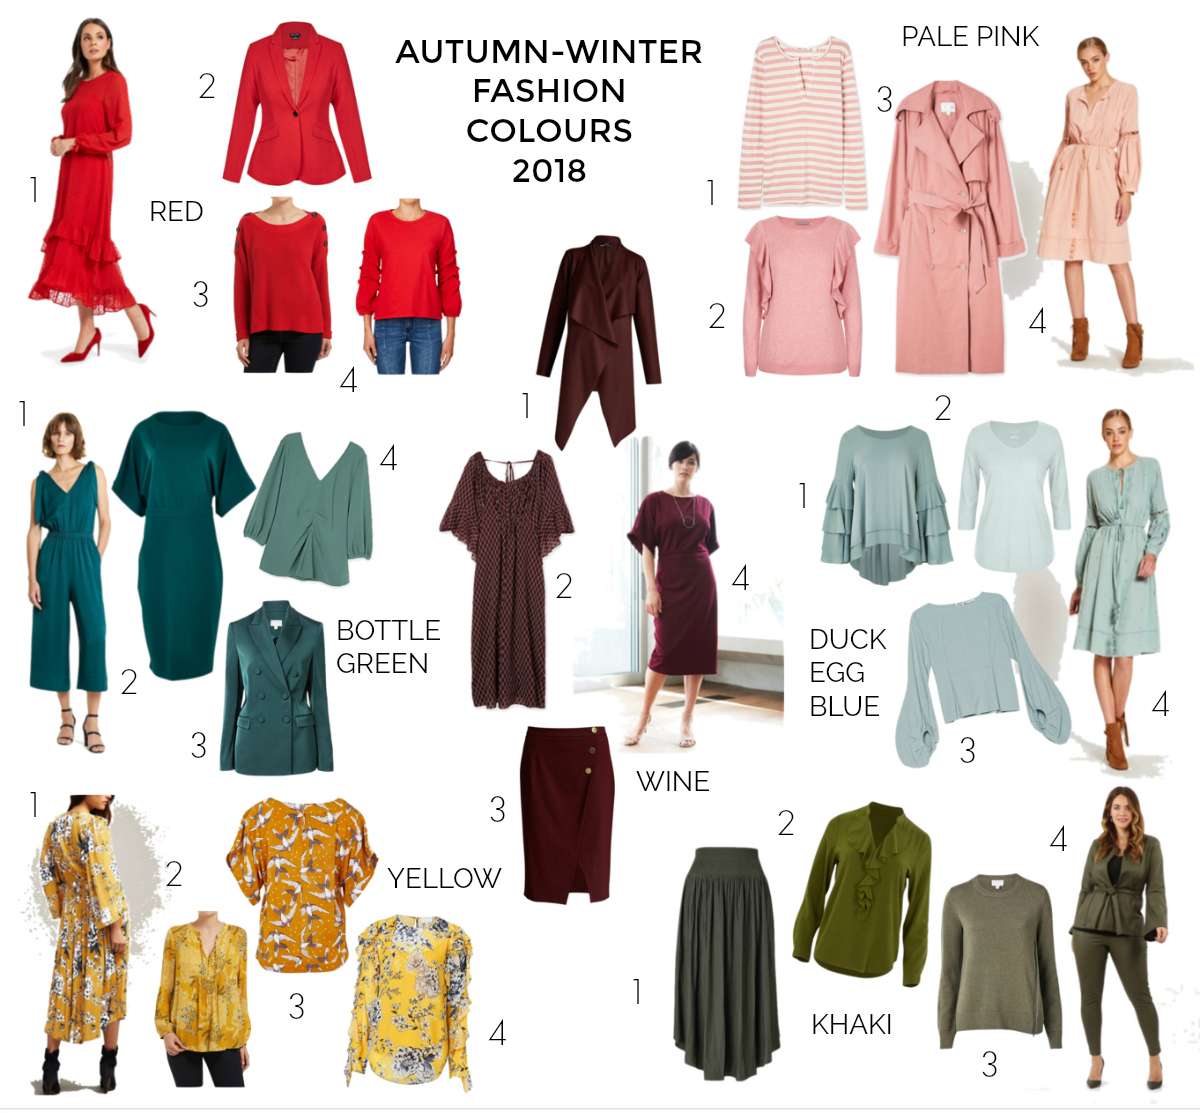 Autumn-Winter fashion colours 2018 | Styling You